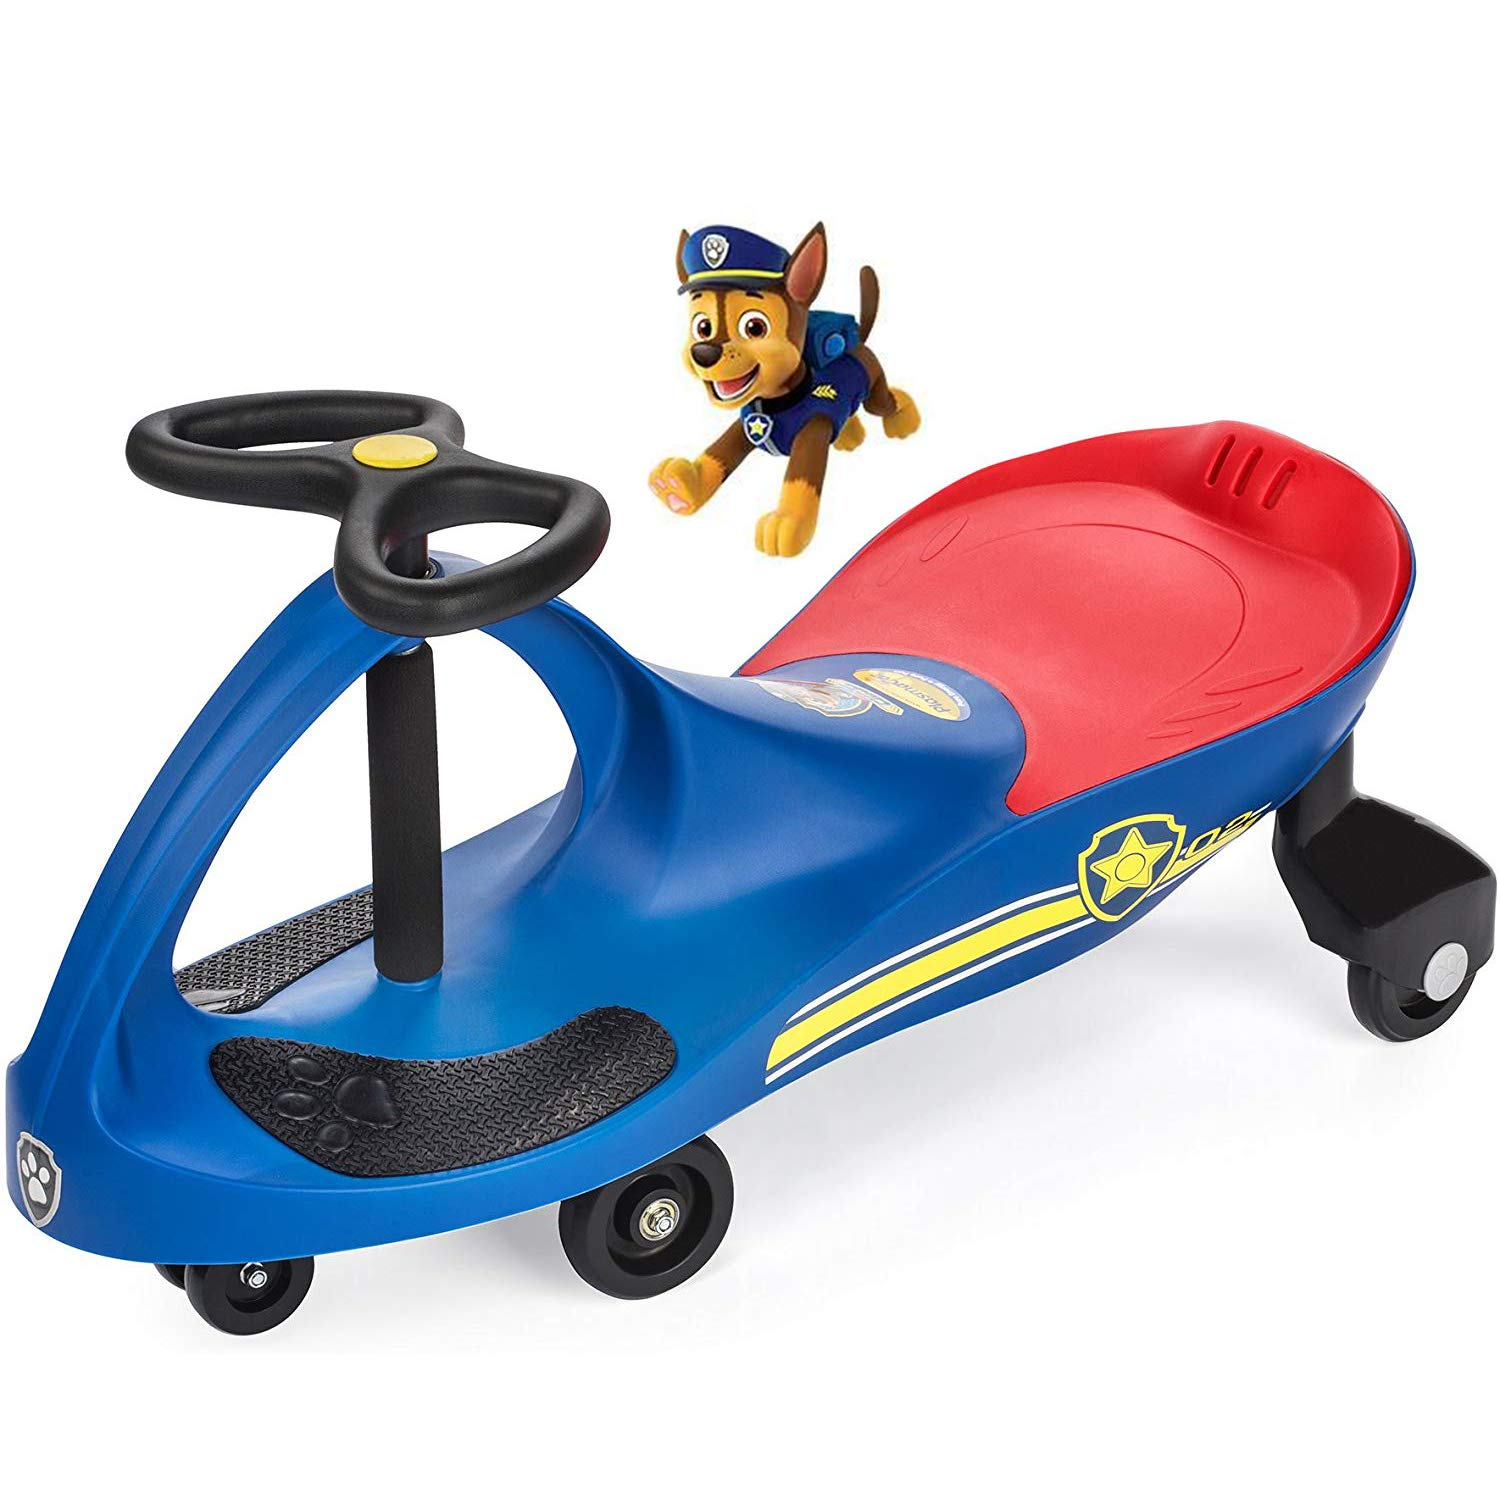 PAW Patrol - The Original PlasmaCar by PlaSmart Inc. - Chase - Blue, Ride On Toy, Ages 3 yrs and up, No batteries, gears, or pedals, Twist, turn, wiggle for endless fun